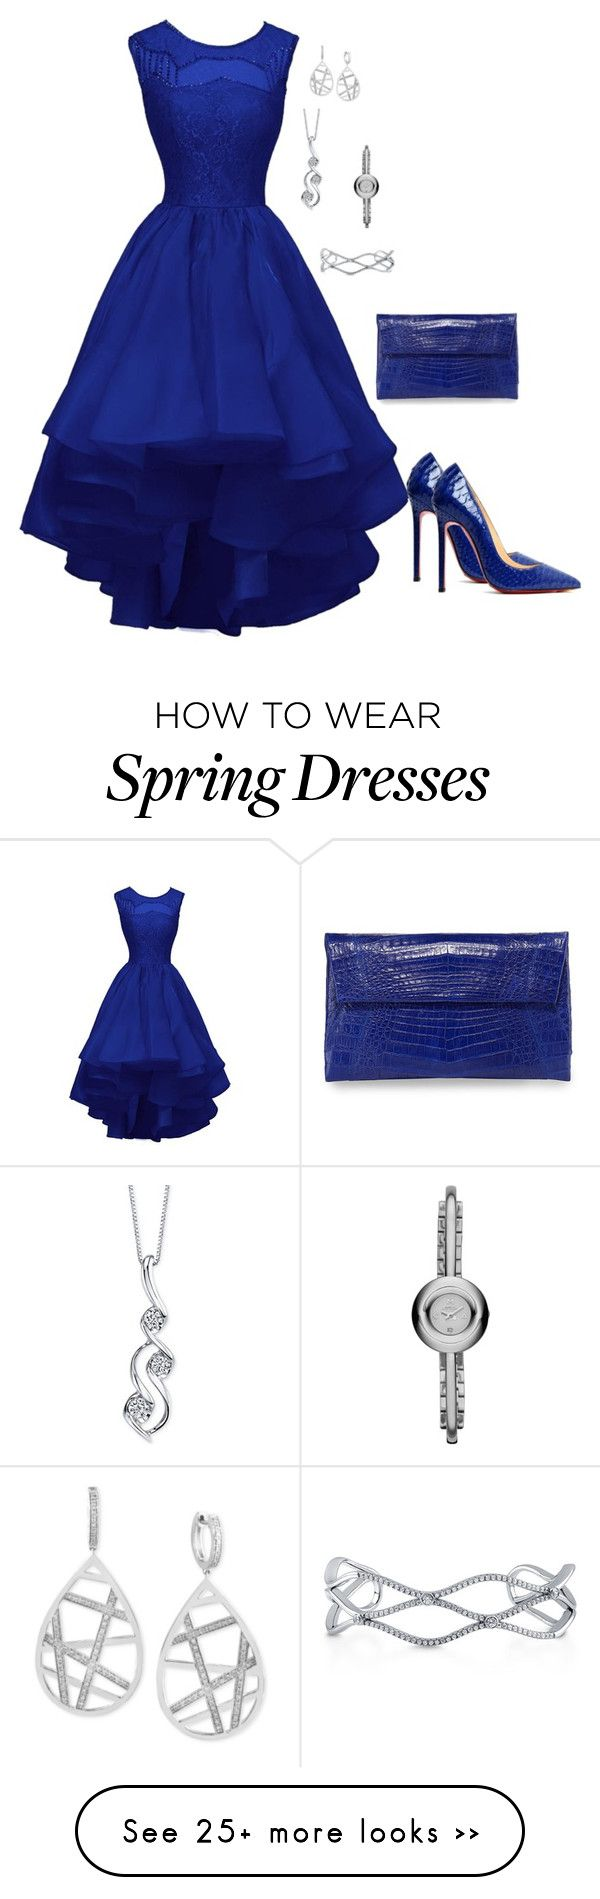 best images about my style on pinterest